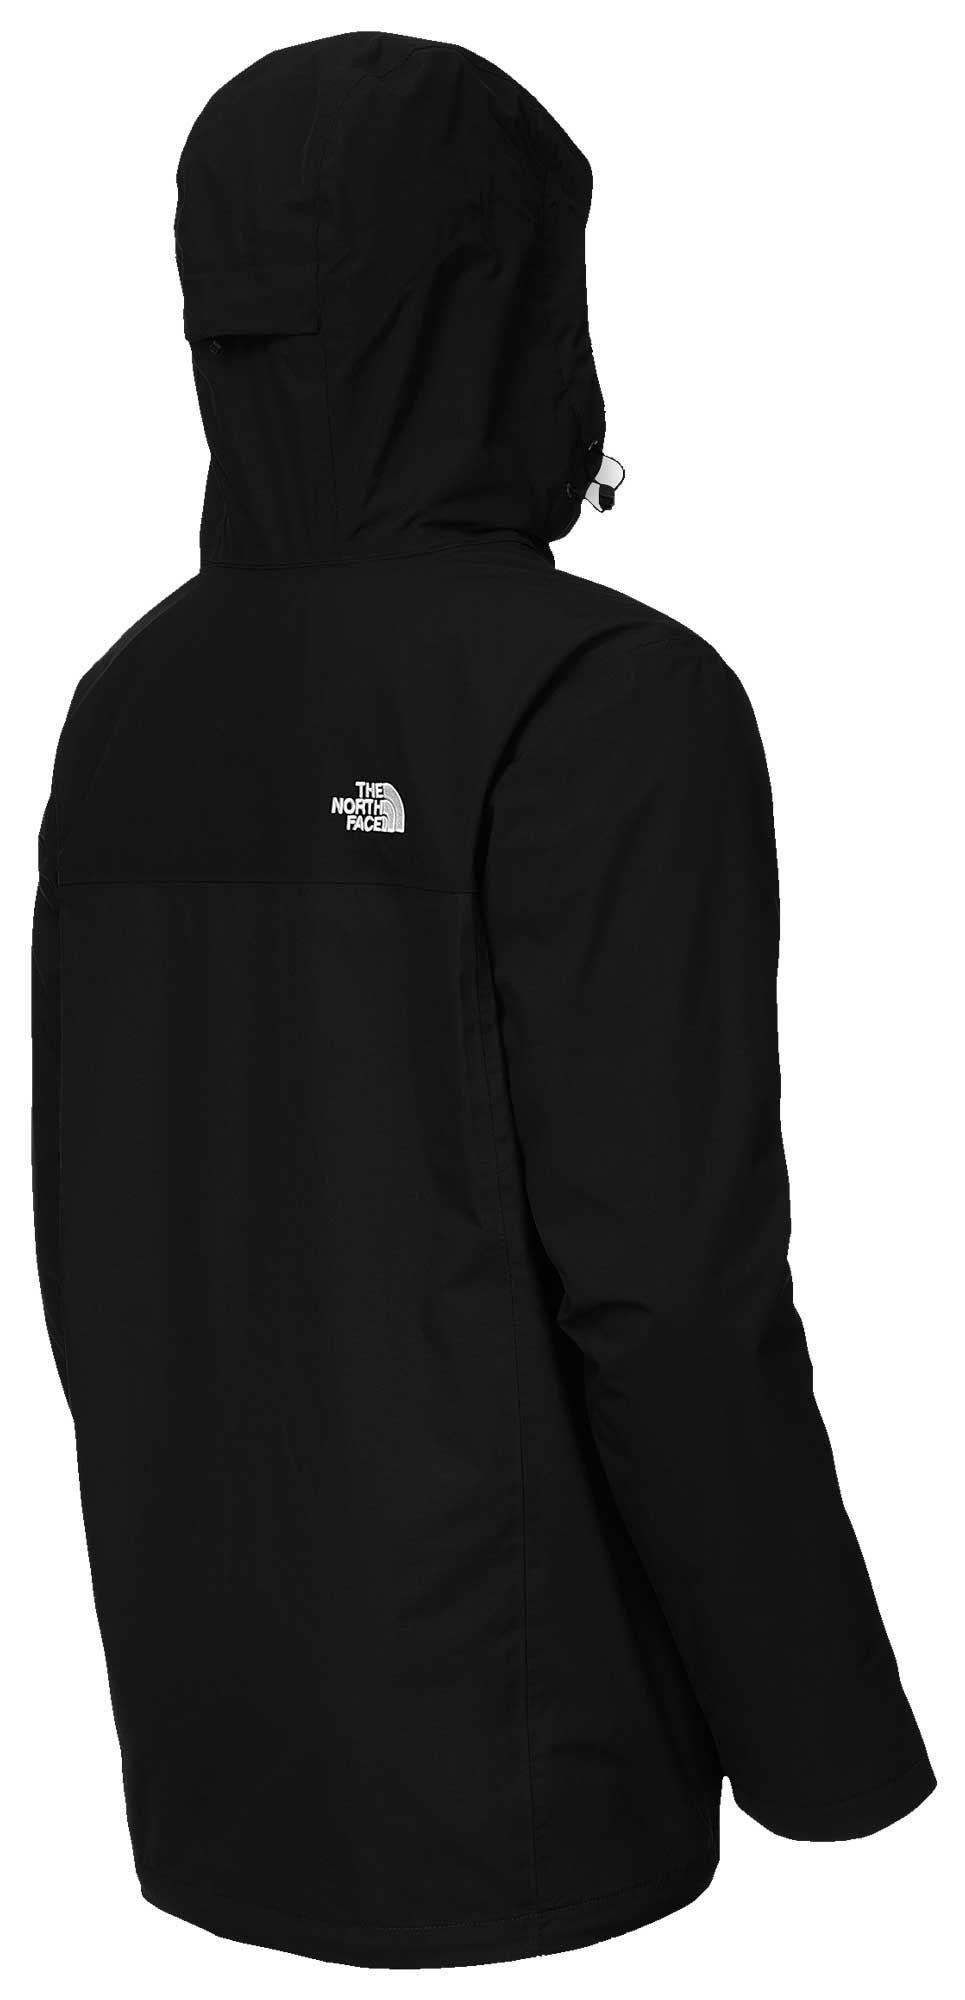 bcdce6043 The North Face Black Atlas Triclimate Jacket for men